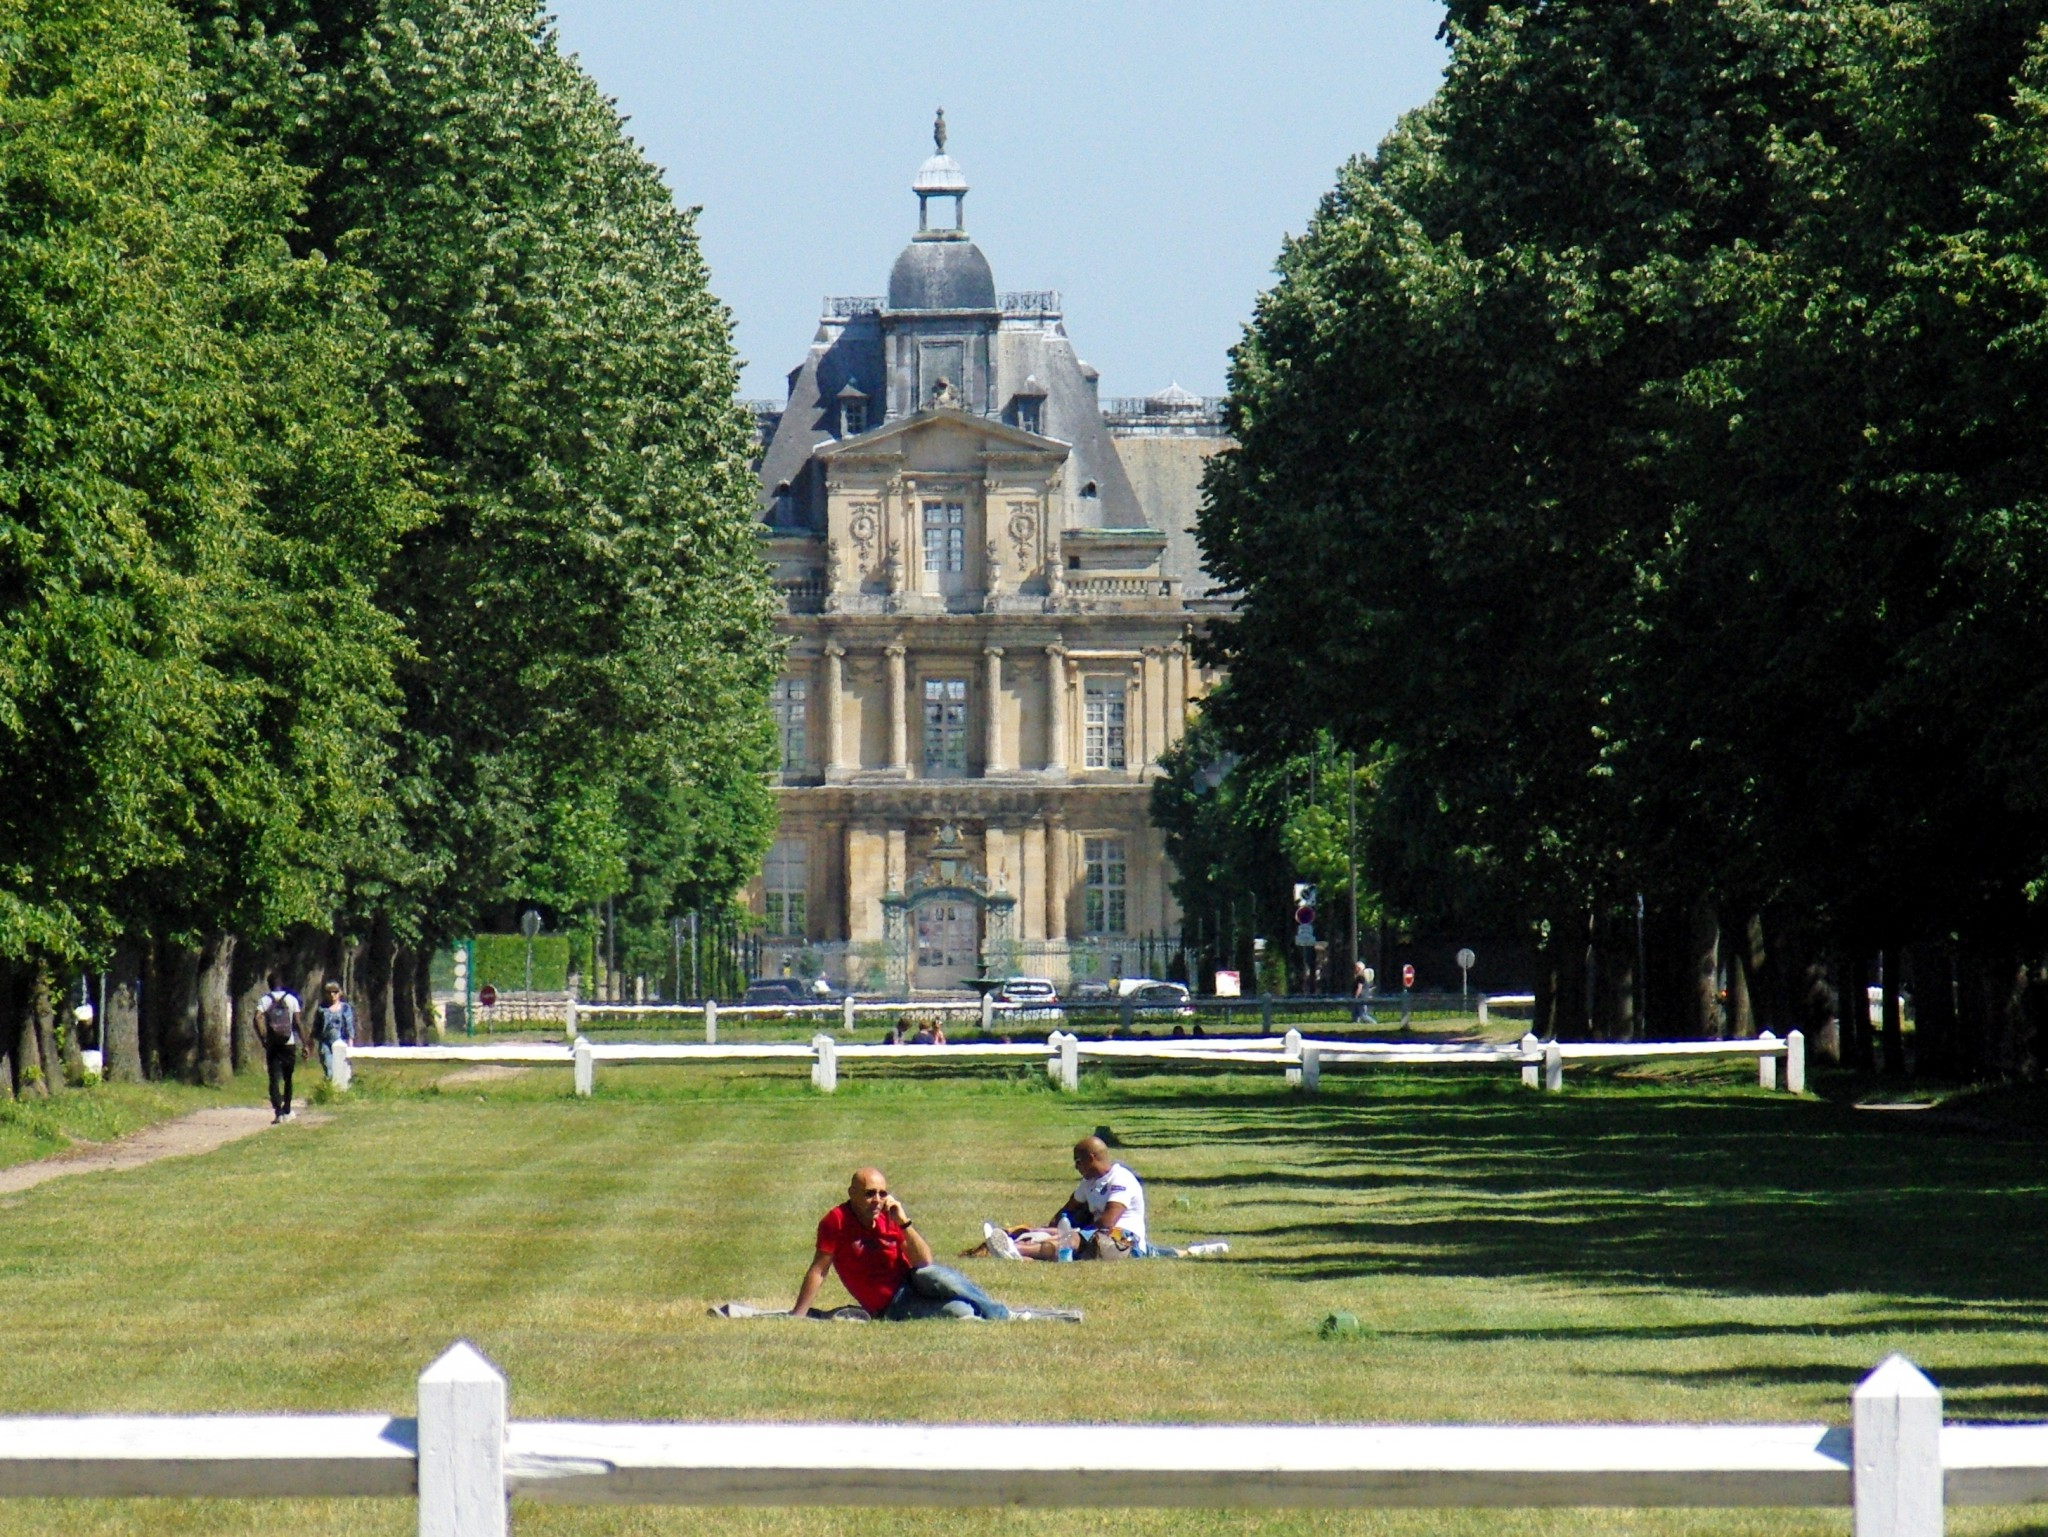 The château of Maisons-Laffitte from the Park © French Moments